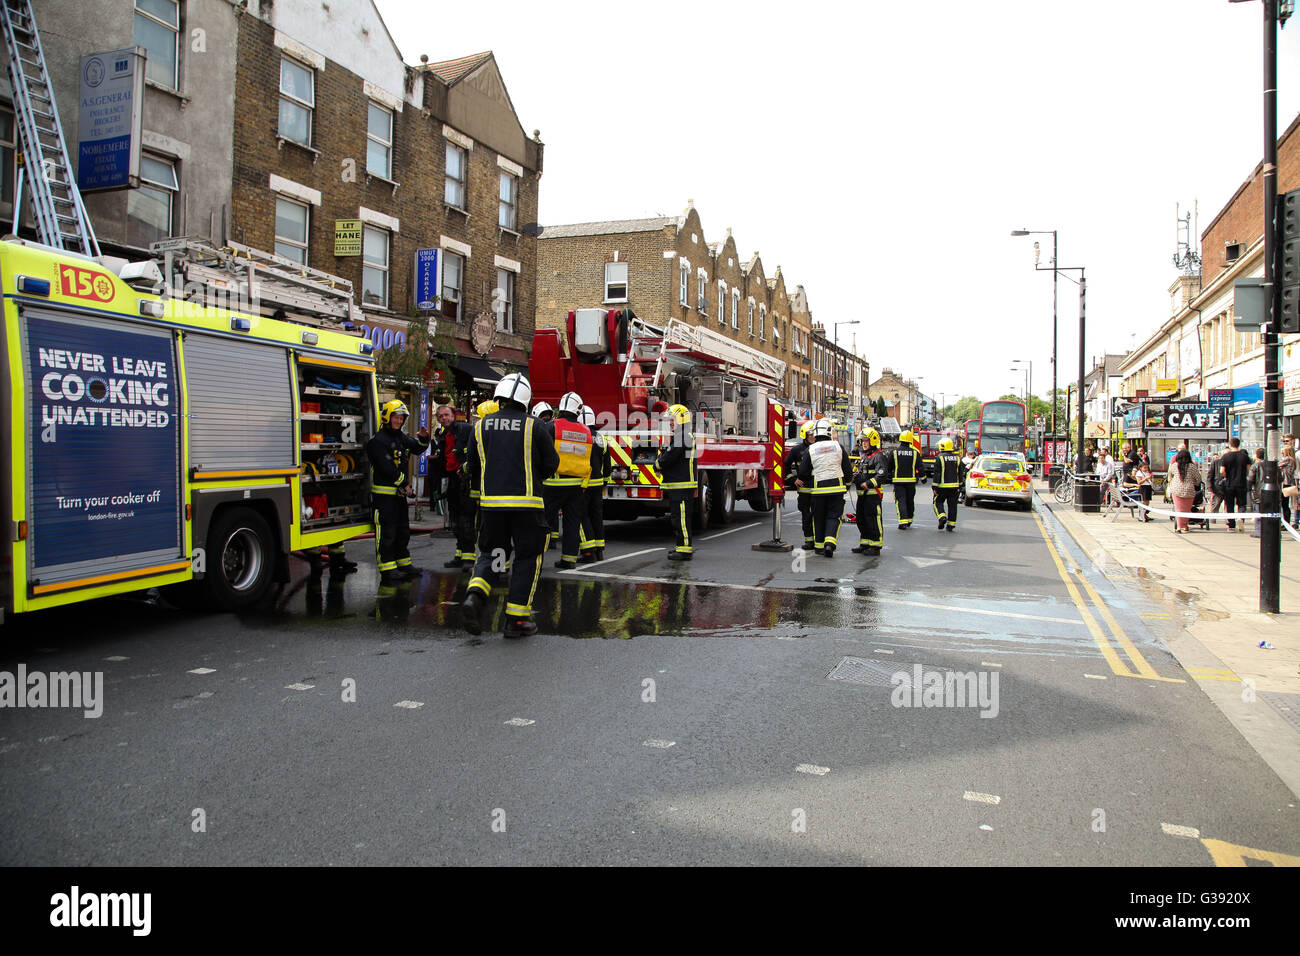 Harringay, North London 10 June 2016 Over 40 firefights, 8 fire engines attend a second floor flat over a cafebar - Stock Image